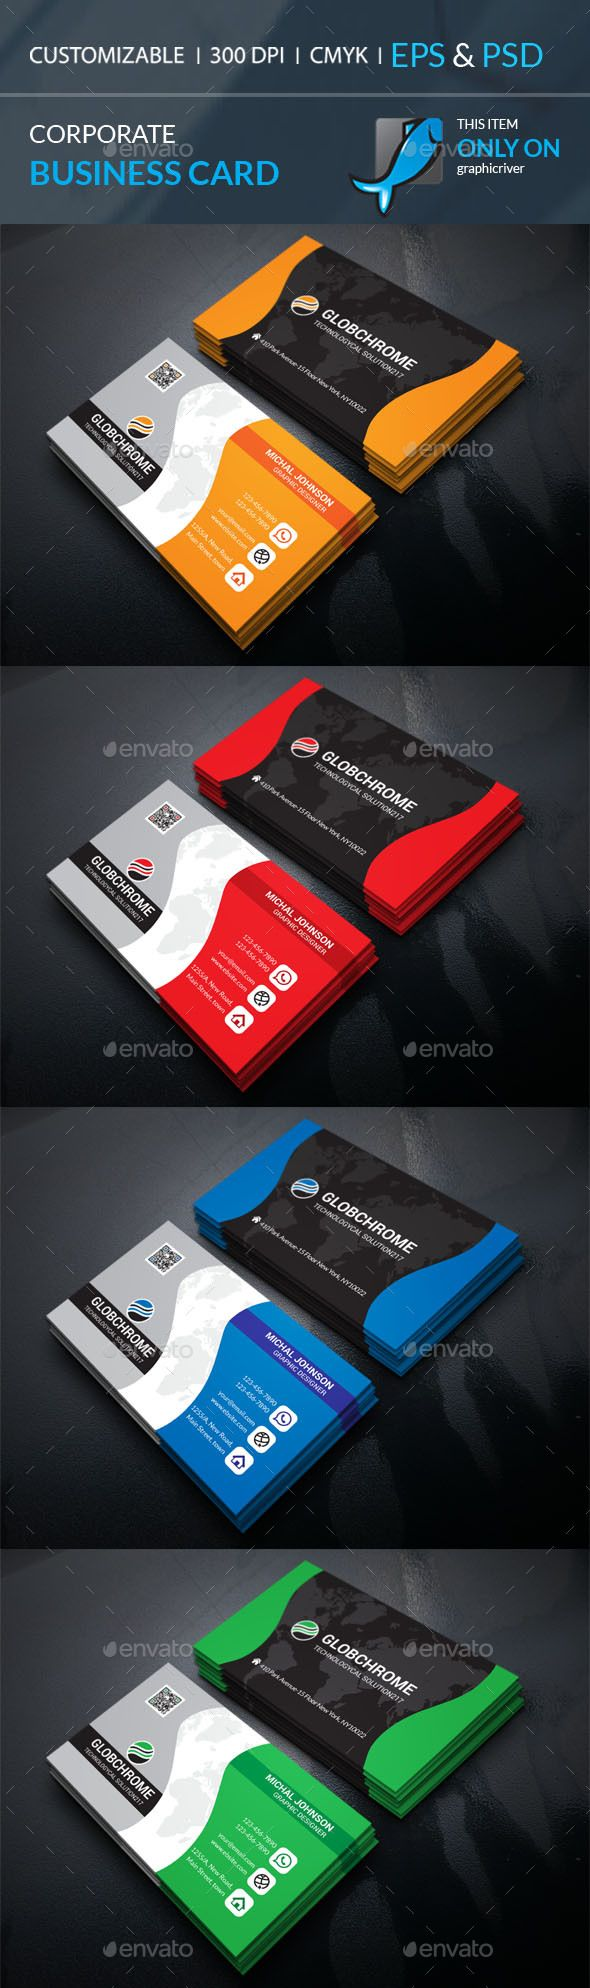 Corporate Business Card | Tarjetas